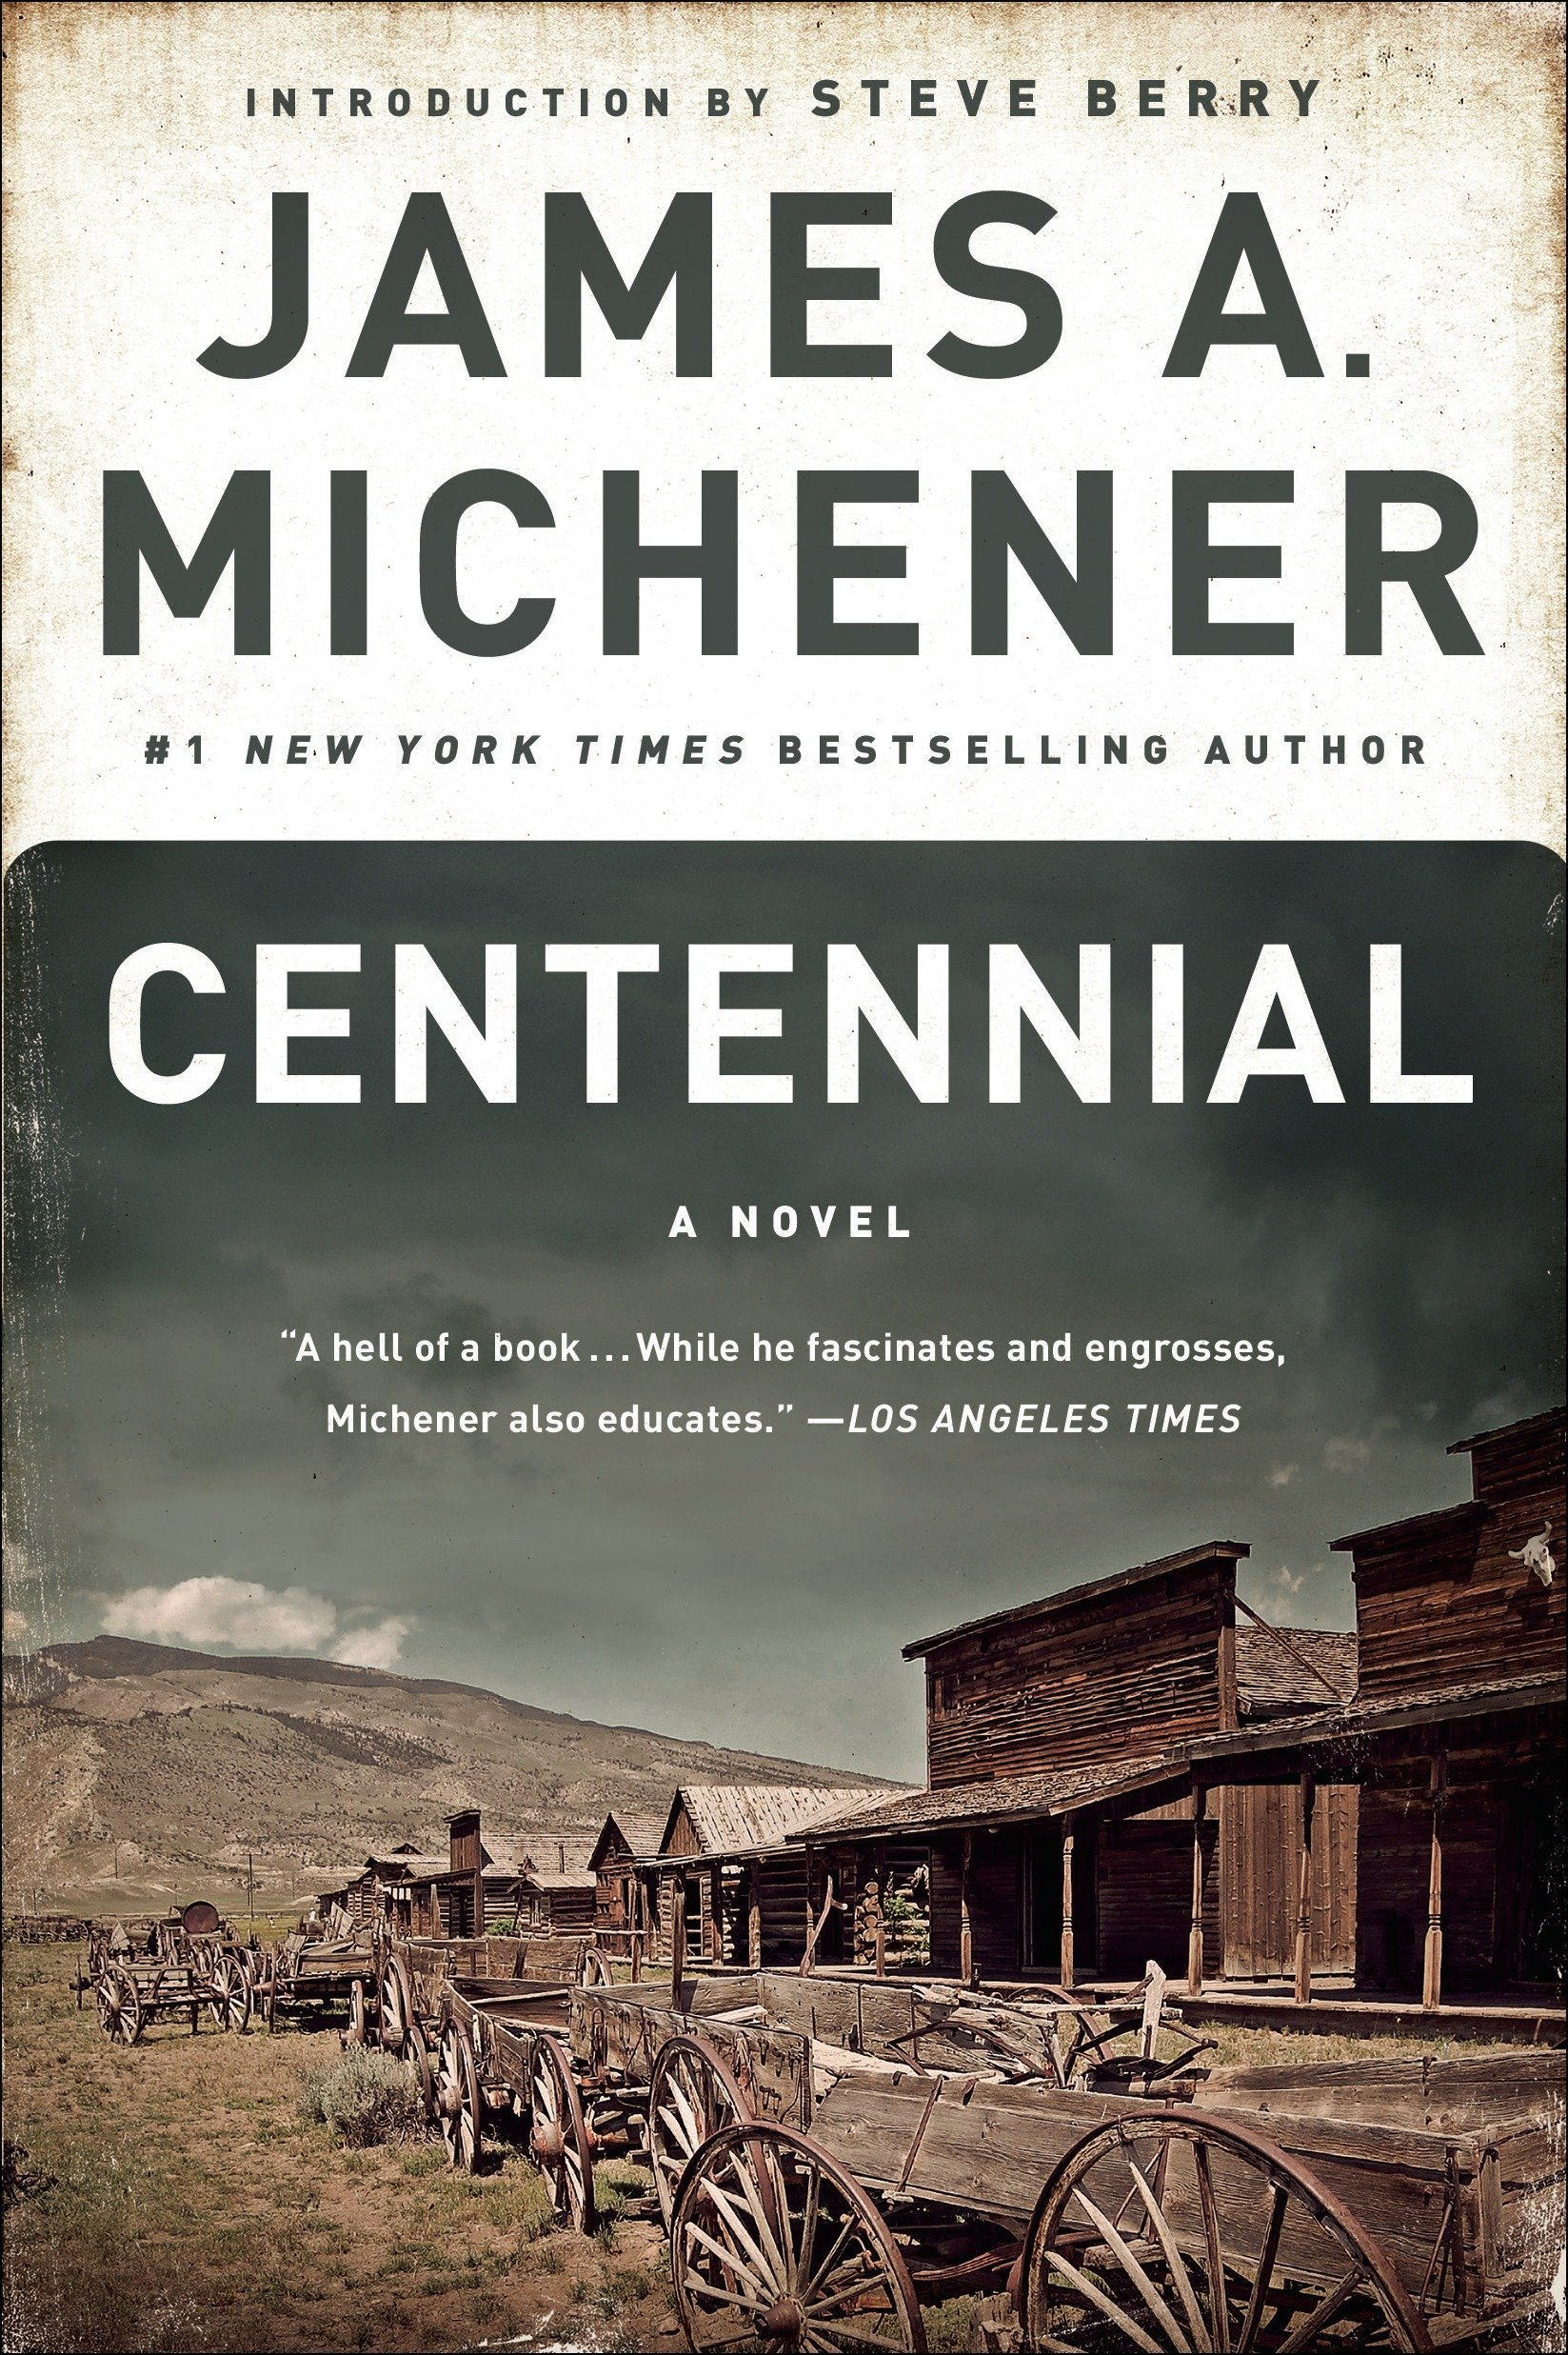 Image result for book cover centennial michener